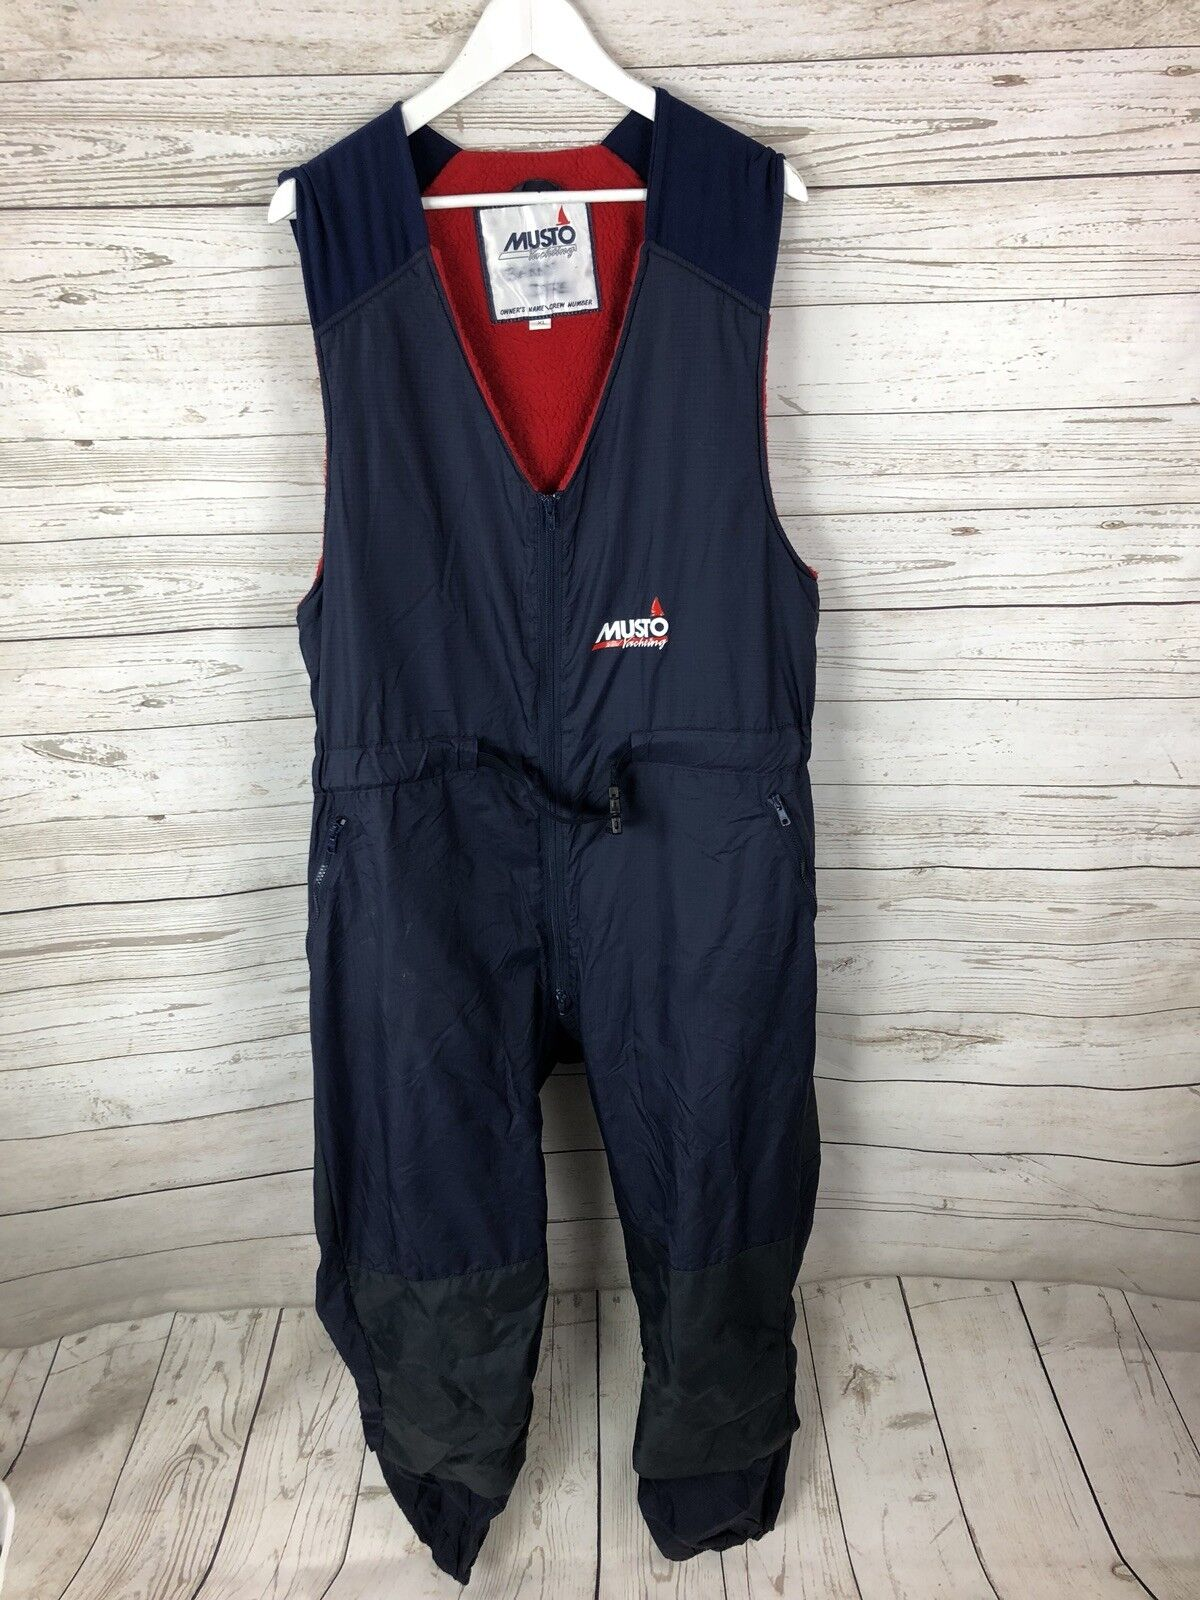 MUSTO Fleece Lined Sailing Yachting Waterproof Salopettes Trousers - XL - Men's